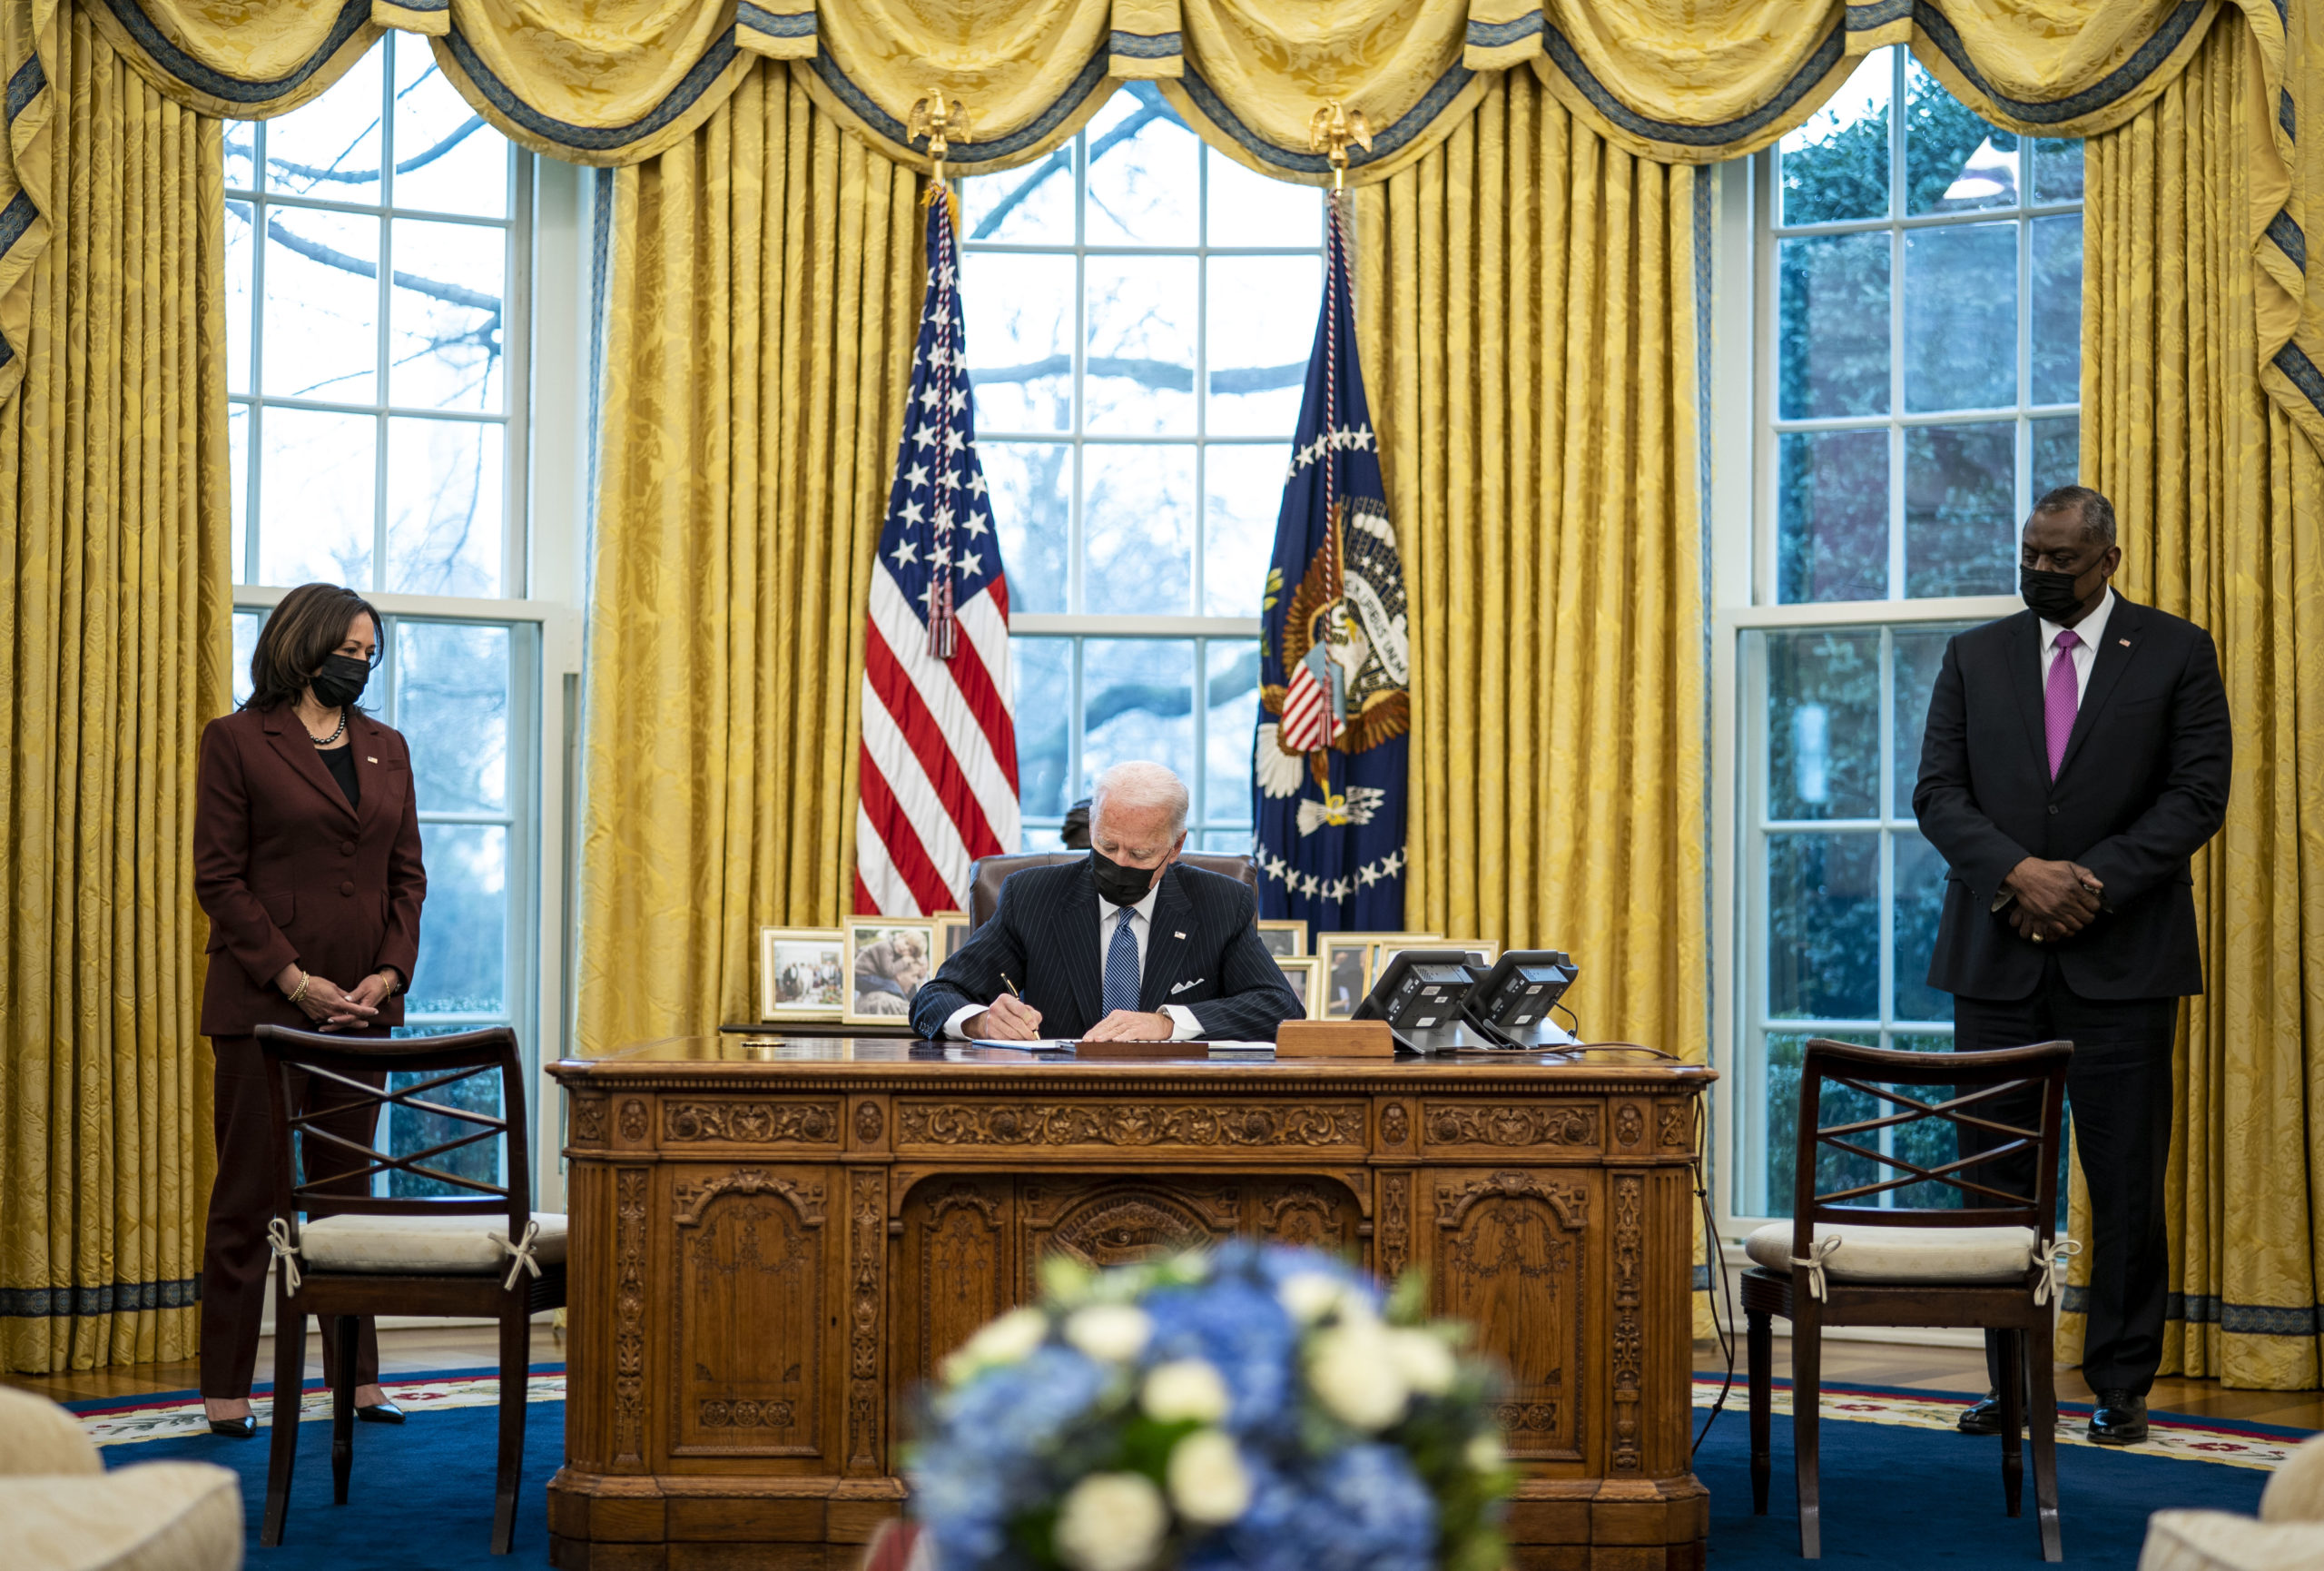 President Joe Biden signs an executive order in the Oval Office on Monday. (Doug Mills-Pool/Getty Images)